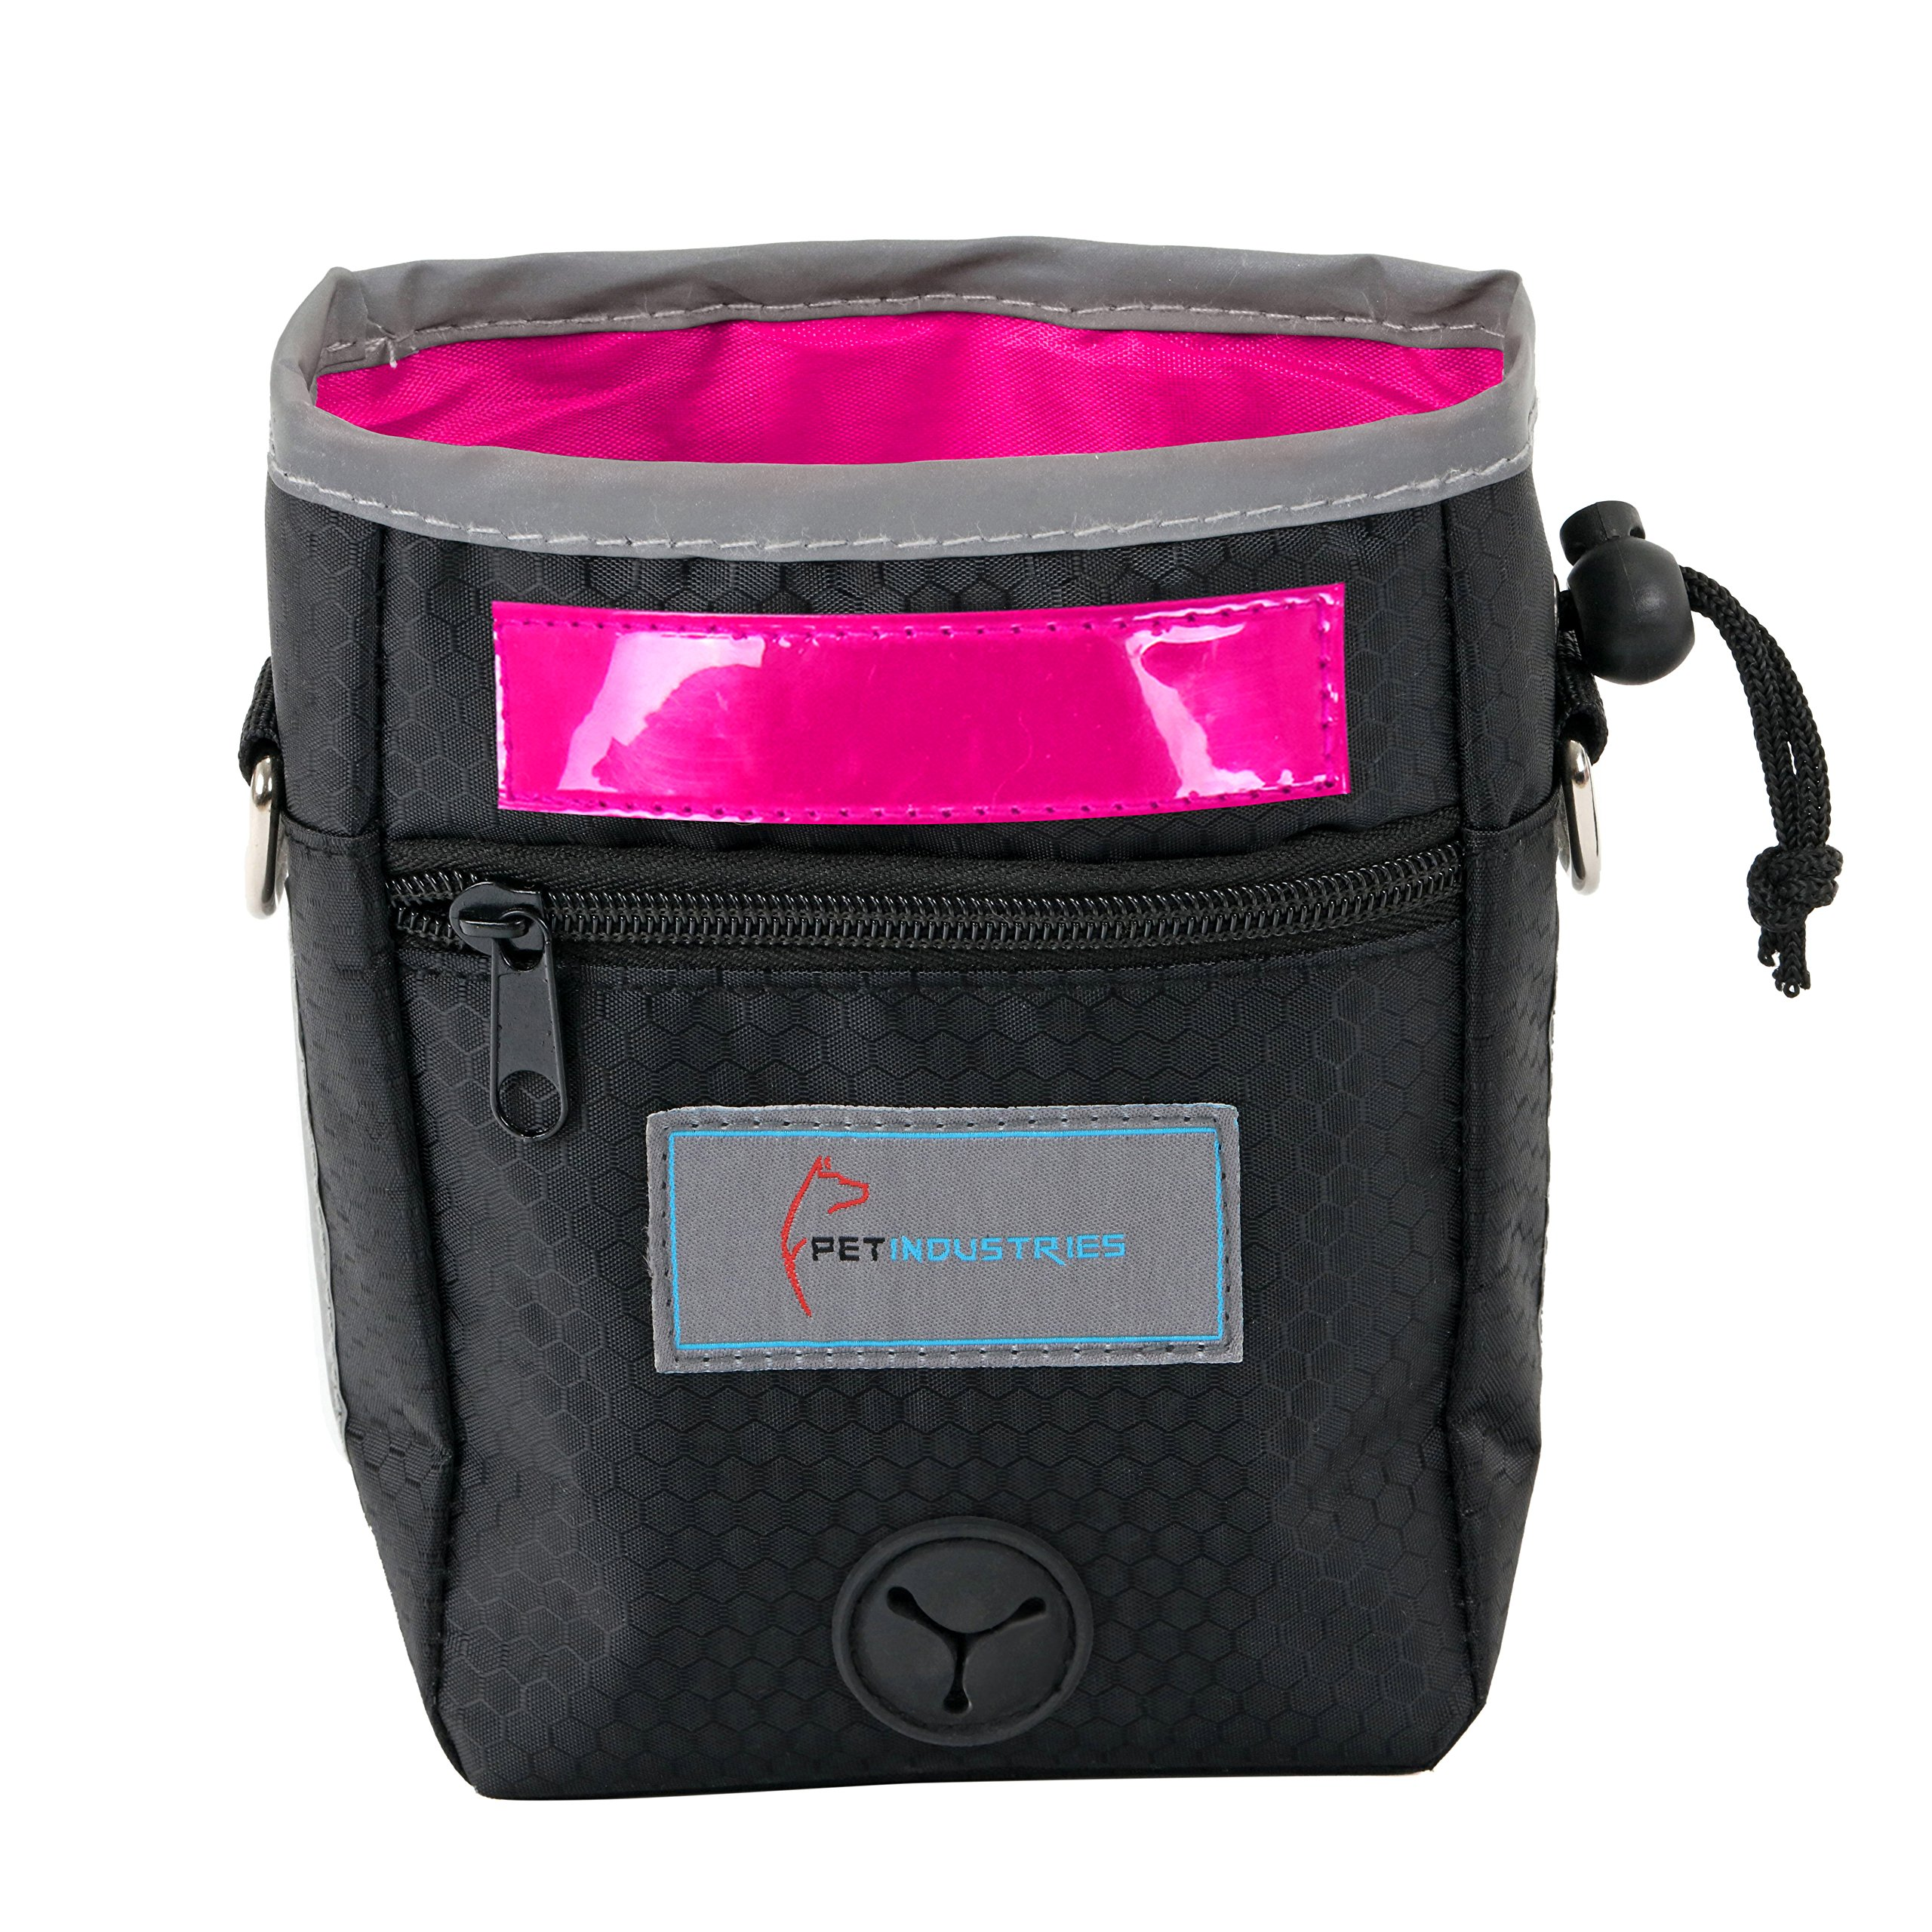 Pet Industries Dog Treat Training Pouch with Poop Bag Dispenser, Waist & Shoulder Reflective Strap, 2 Zippered Pockets and Quick-Access Opening [Premium Edition] (Rose Pink)